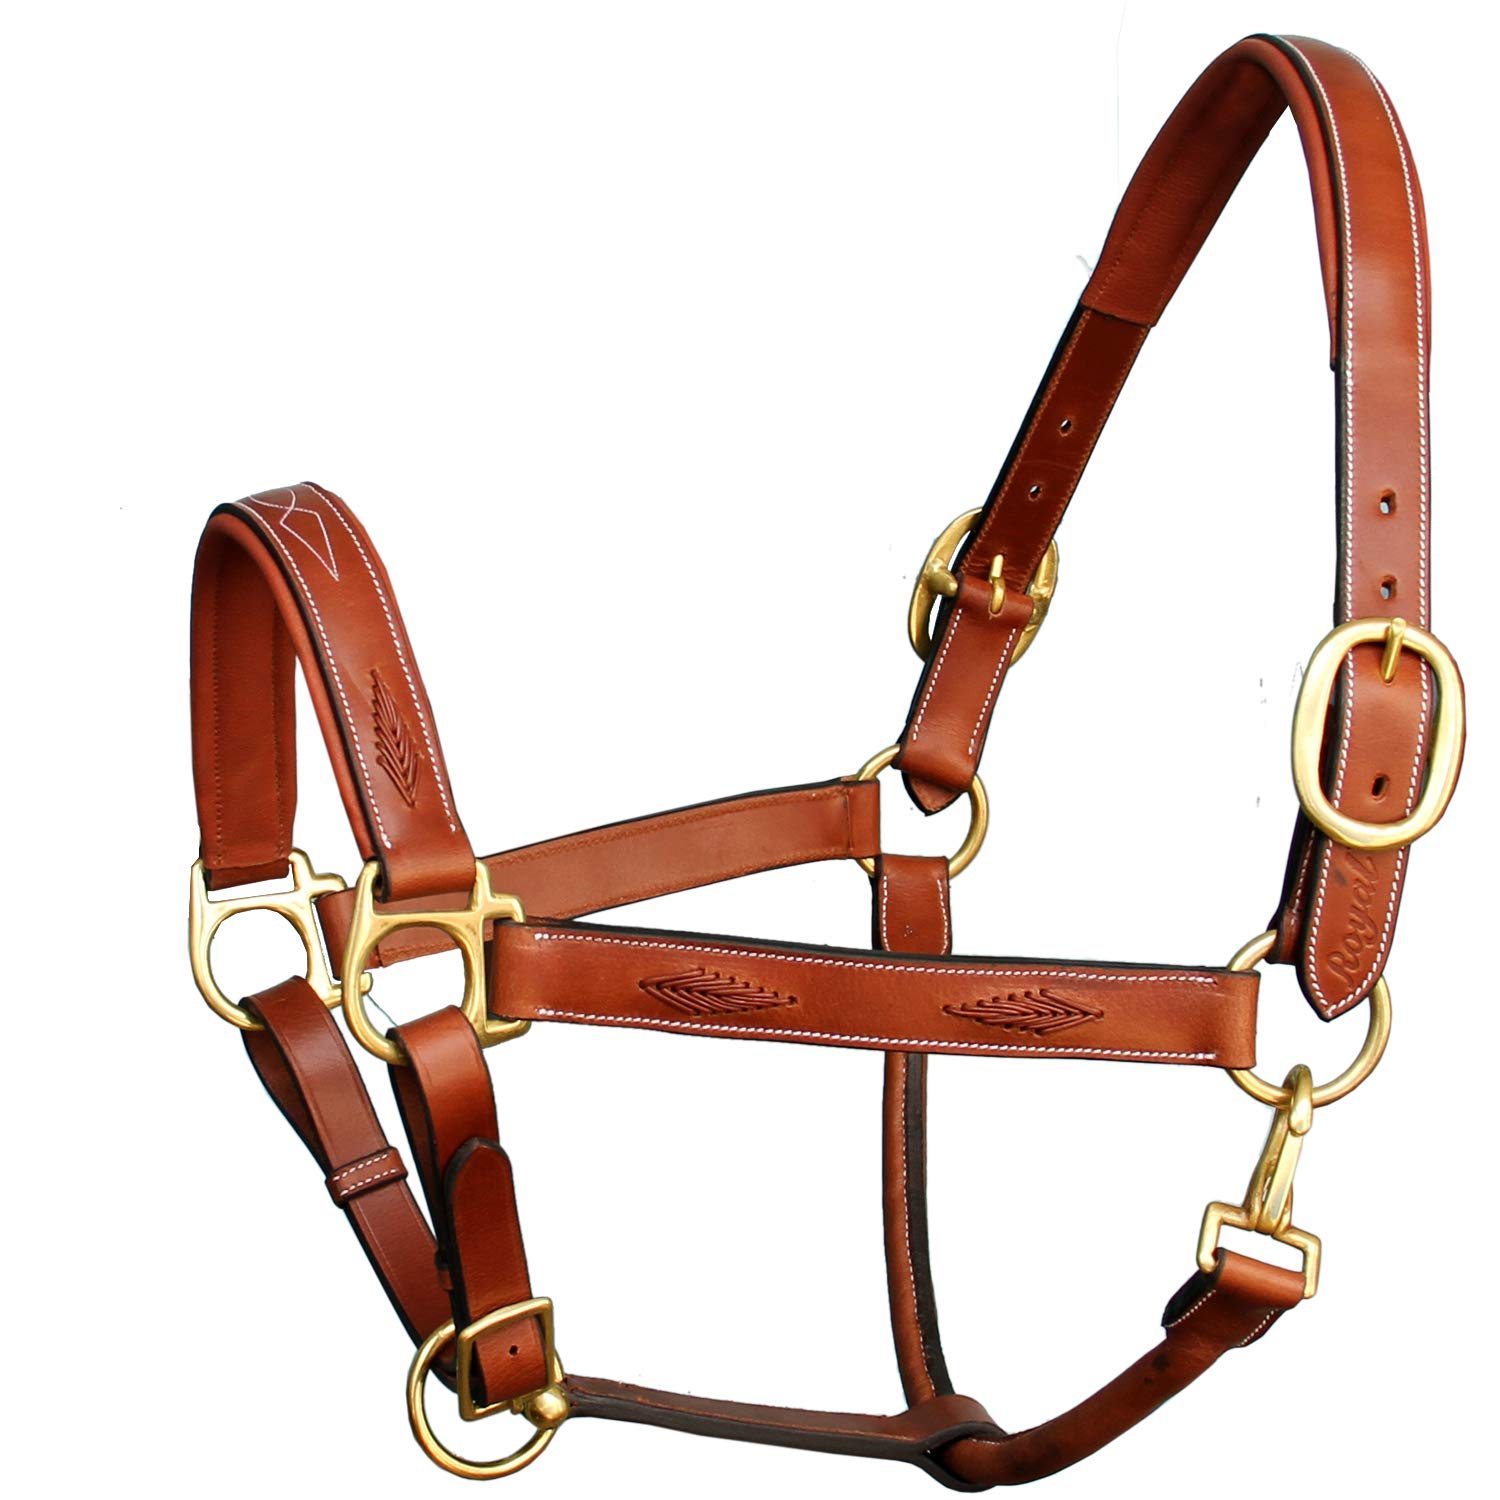 Conker (Tan Brown) Small (Pony) Conker (Tan Brown) Small (Pony) Exion Fancy Braided Padded Halter and Brass Buckles   Equestrian Show Jumping Padded Halter   English Horse Riding Premium Tack   Conker   Pony